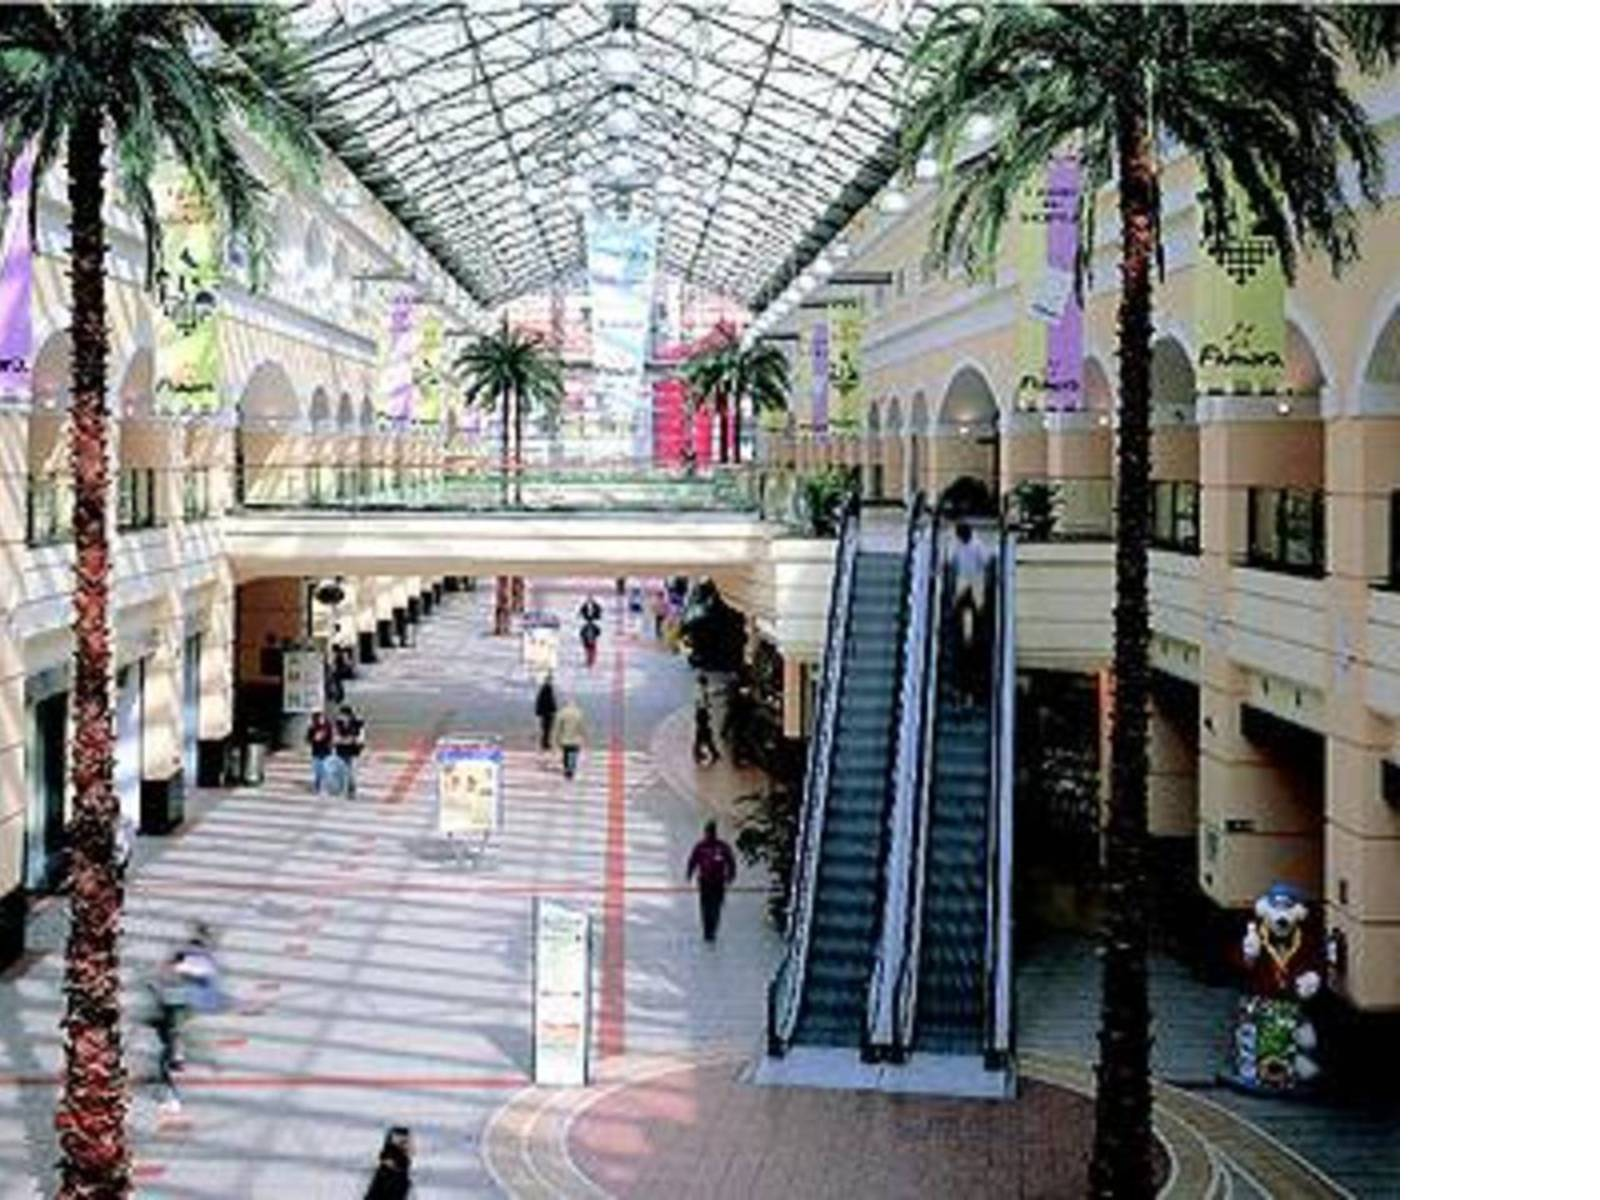 Fiumara shopping centre